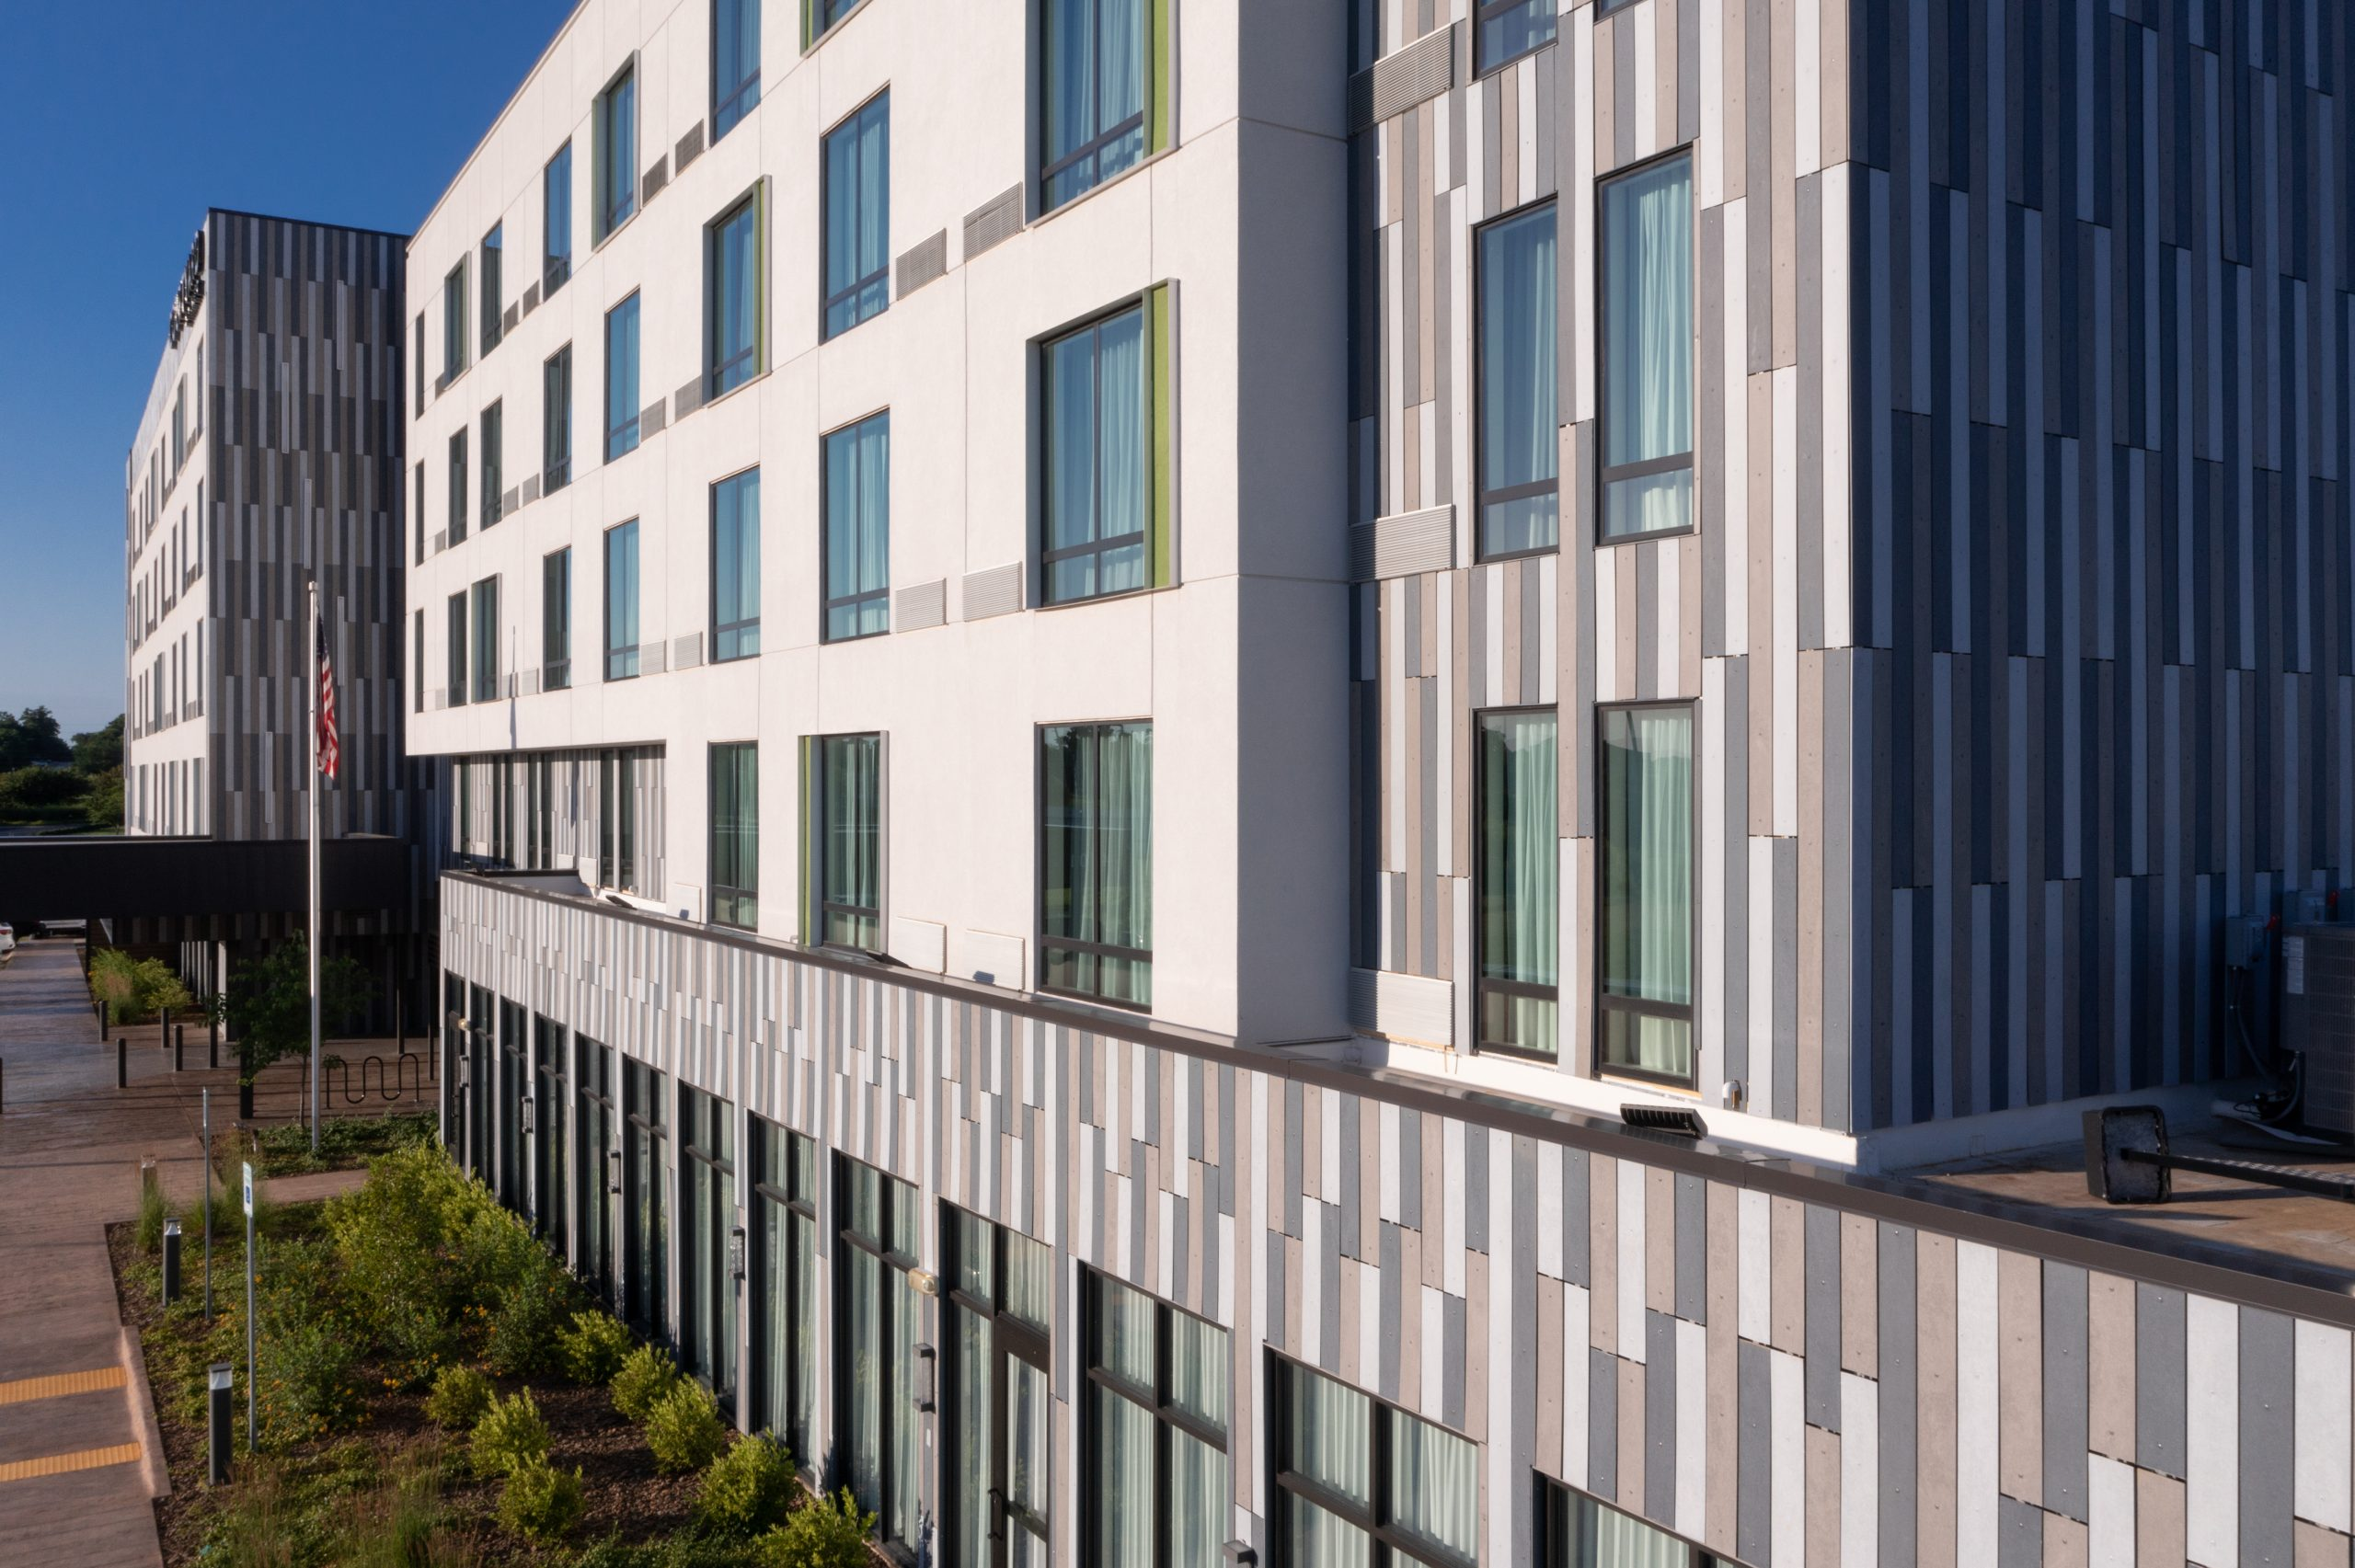 Courtyard by Marriot Project